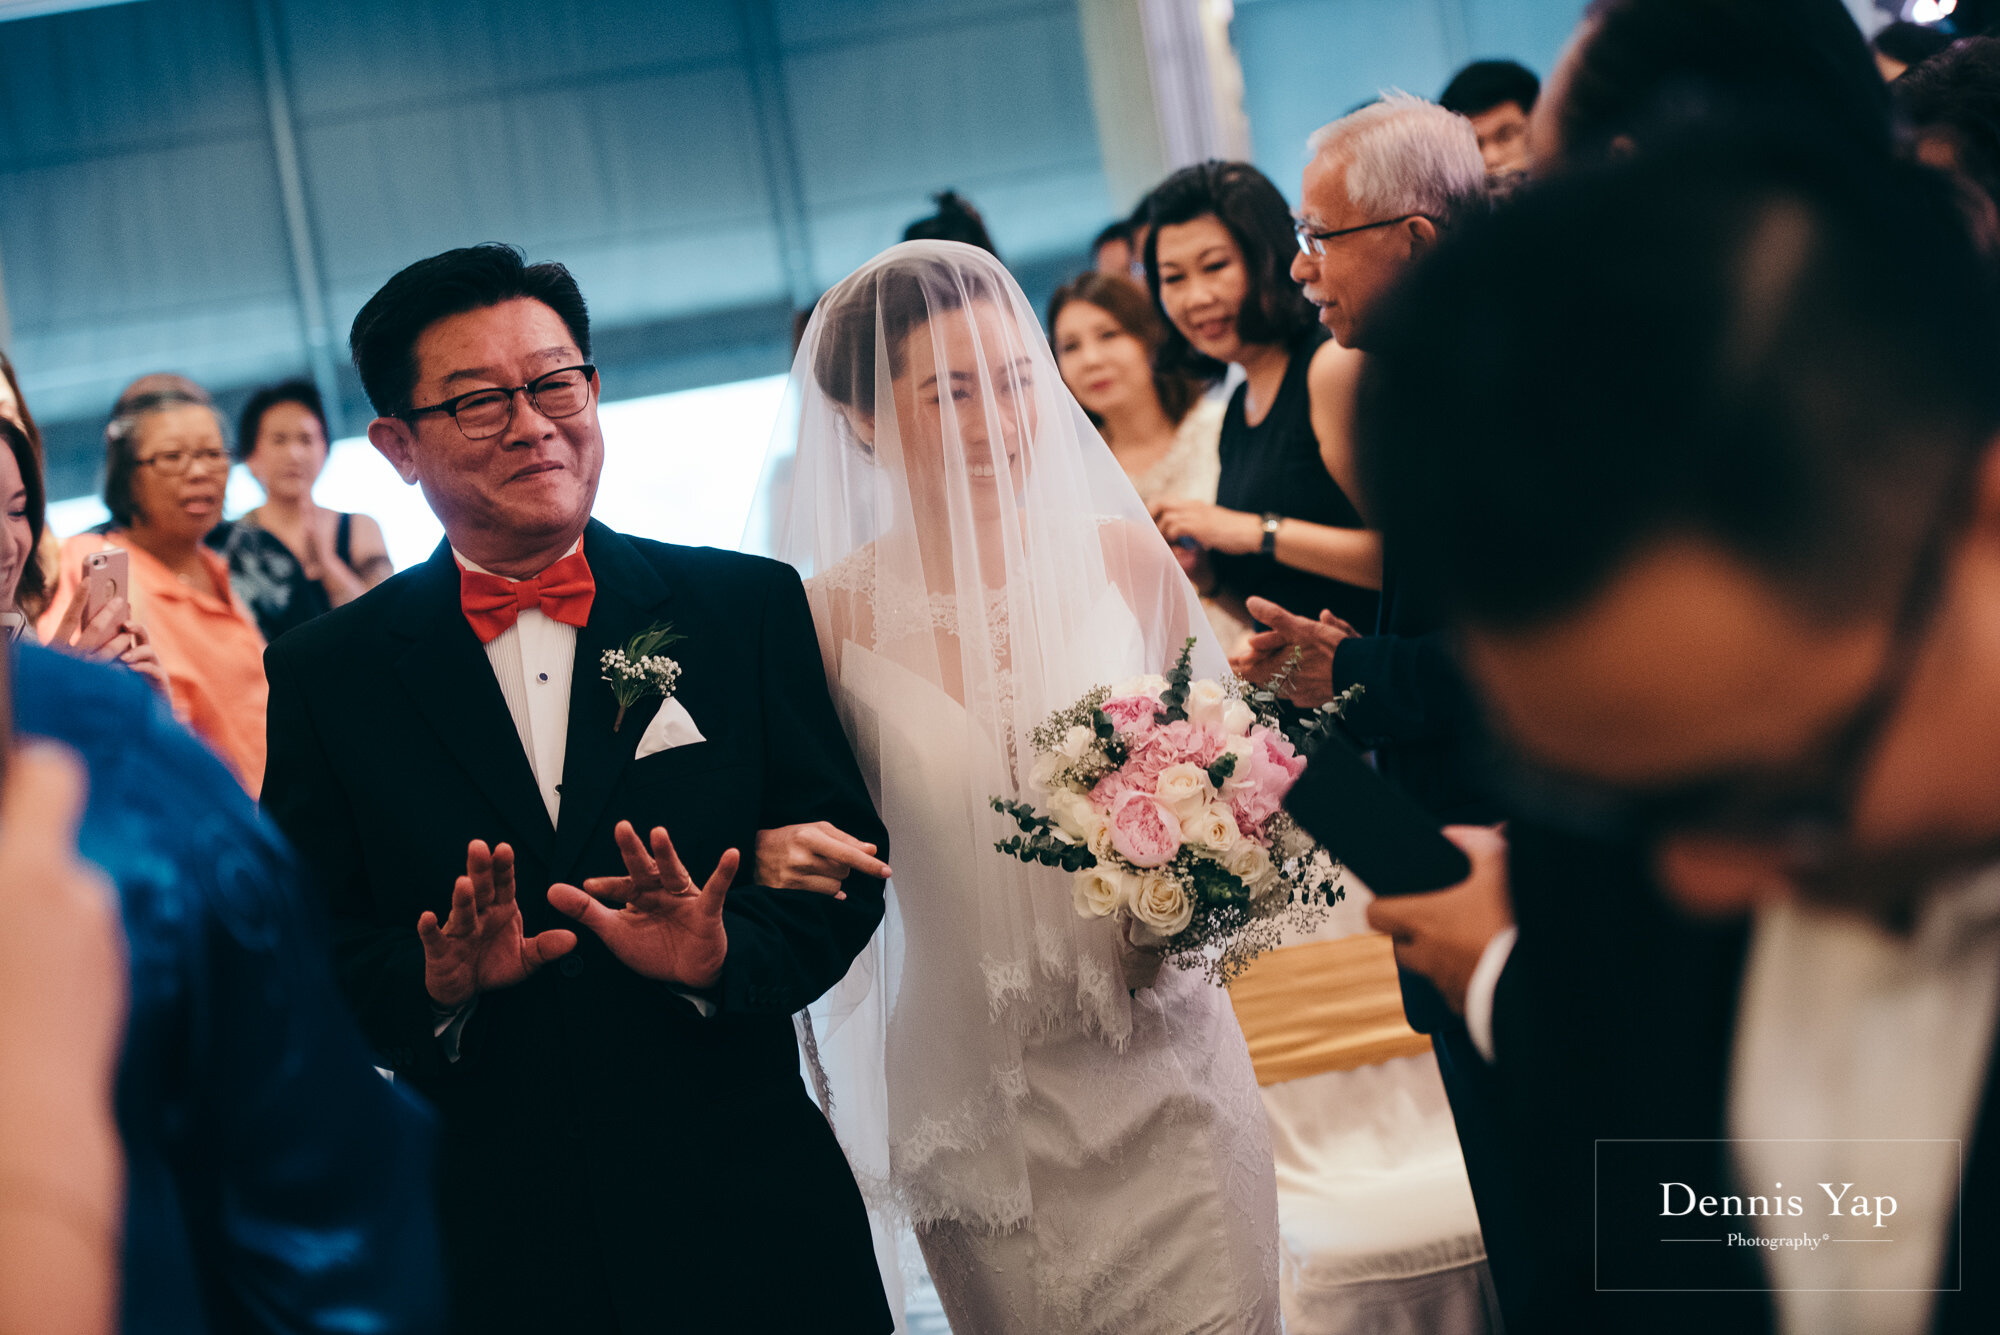 kevan khing wei wedding day hilton kuala lumpur vow exchange ceremony dennis yap photography malaysia top wedding photographer-11.jpg